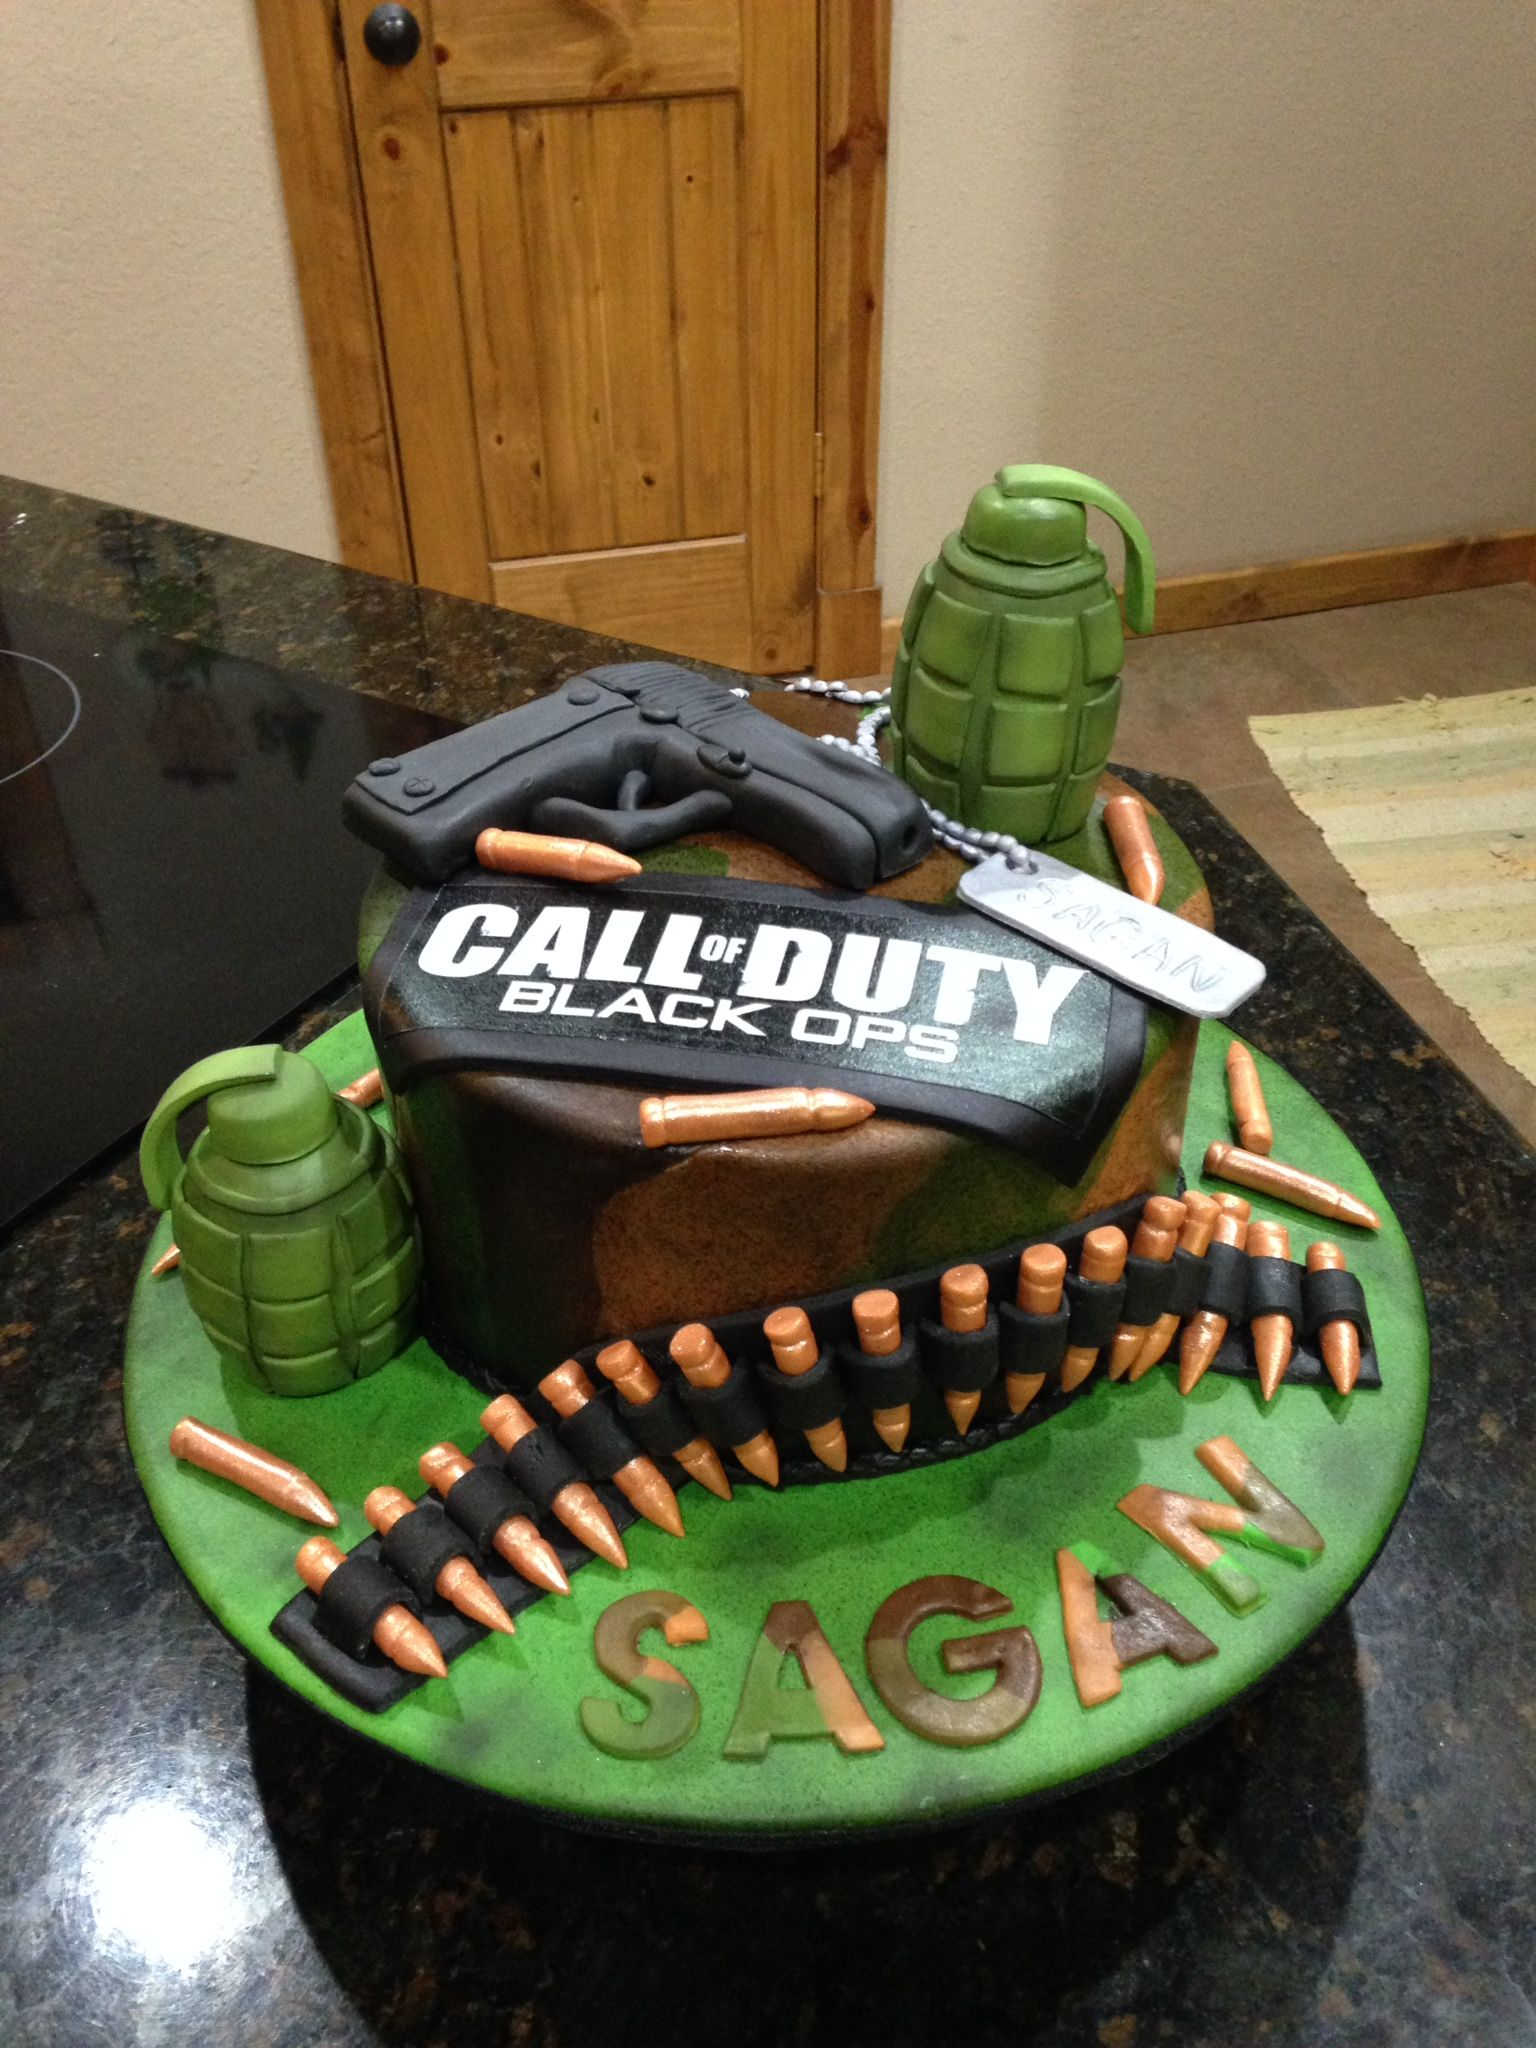 Call of Duty cake all decorations edible. Www.facebook